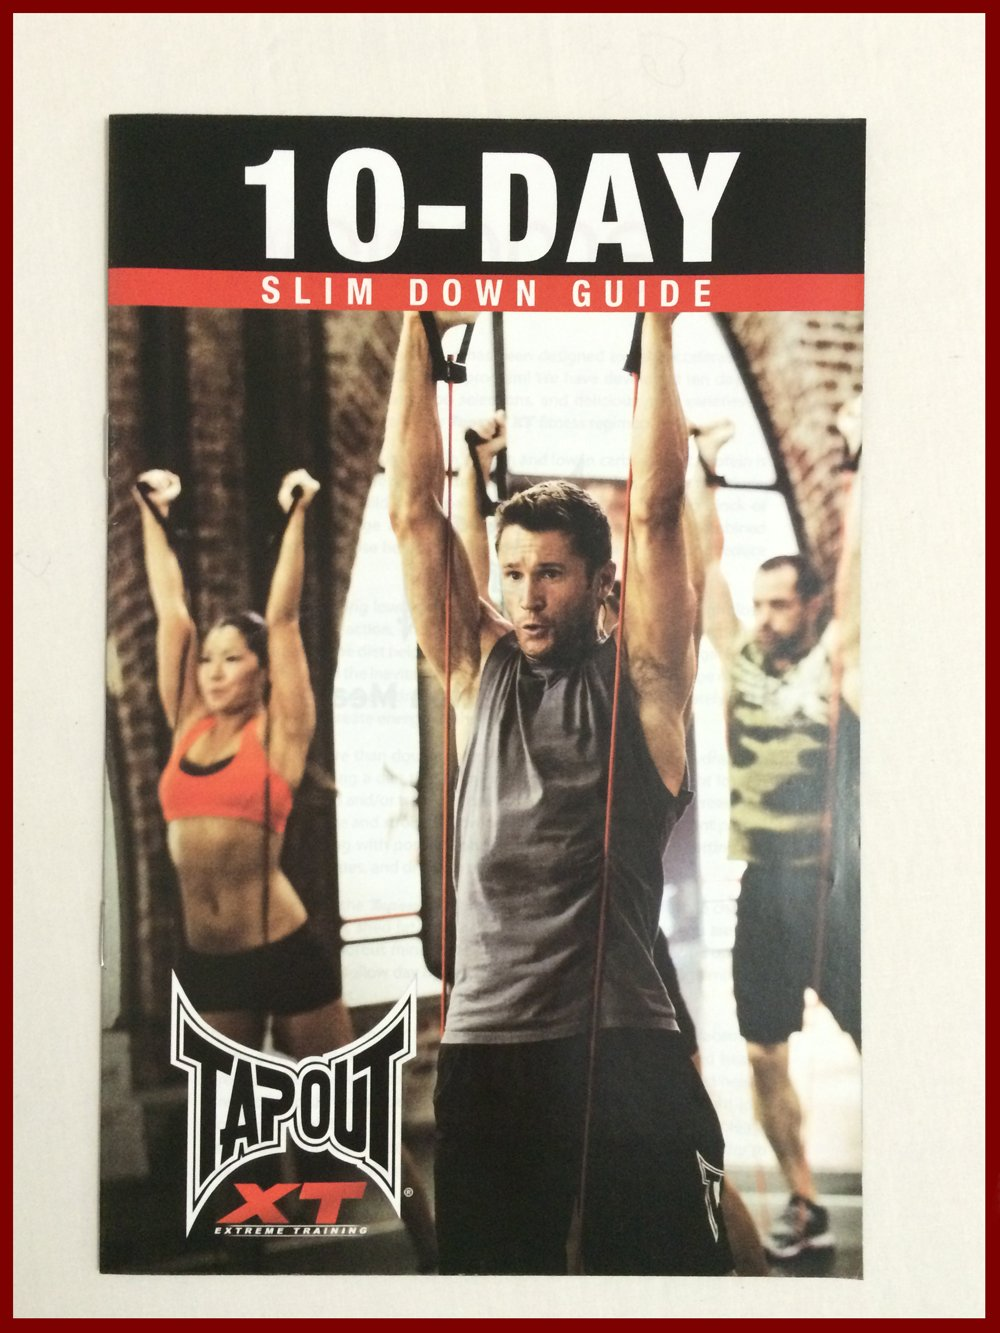 TapouT XT Complete Fitness Program including BONUS 3 Pack Leg Resistance Bands + MORE